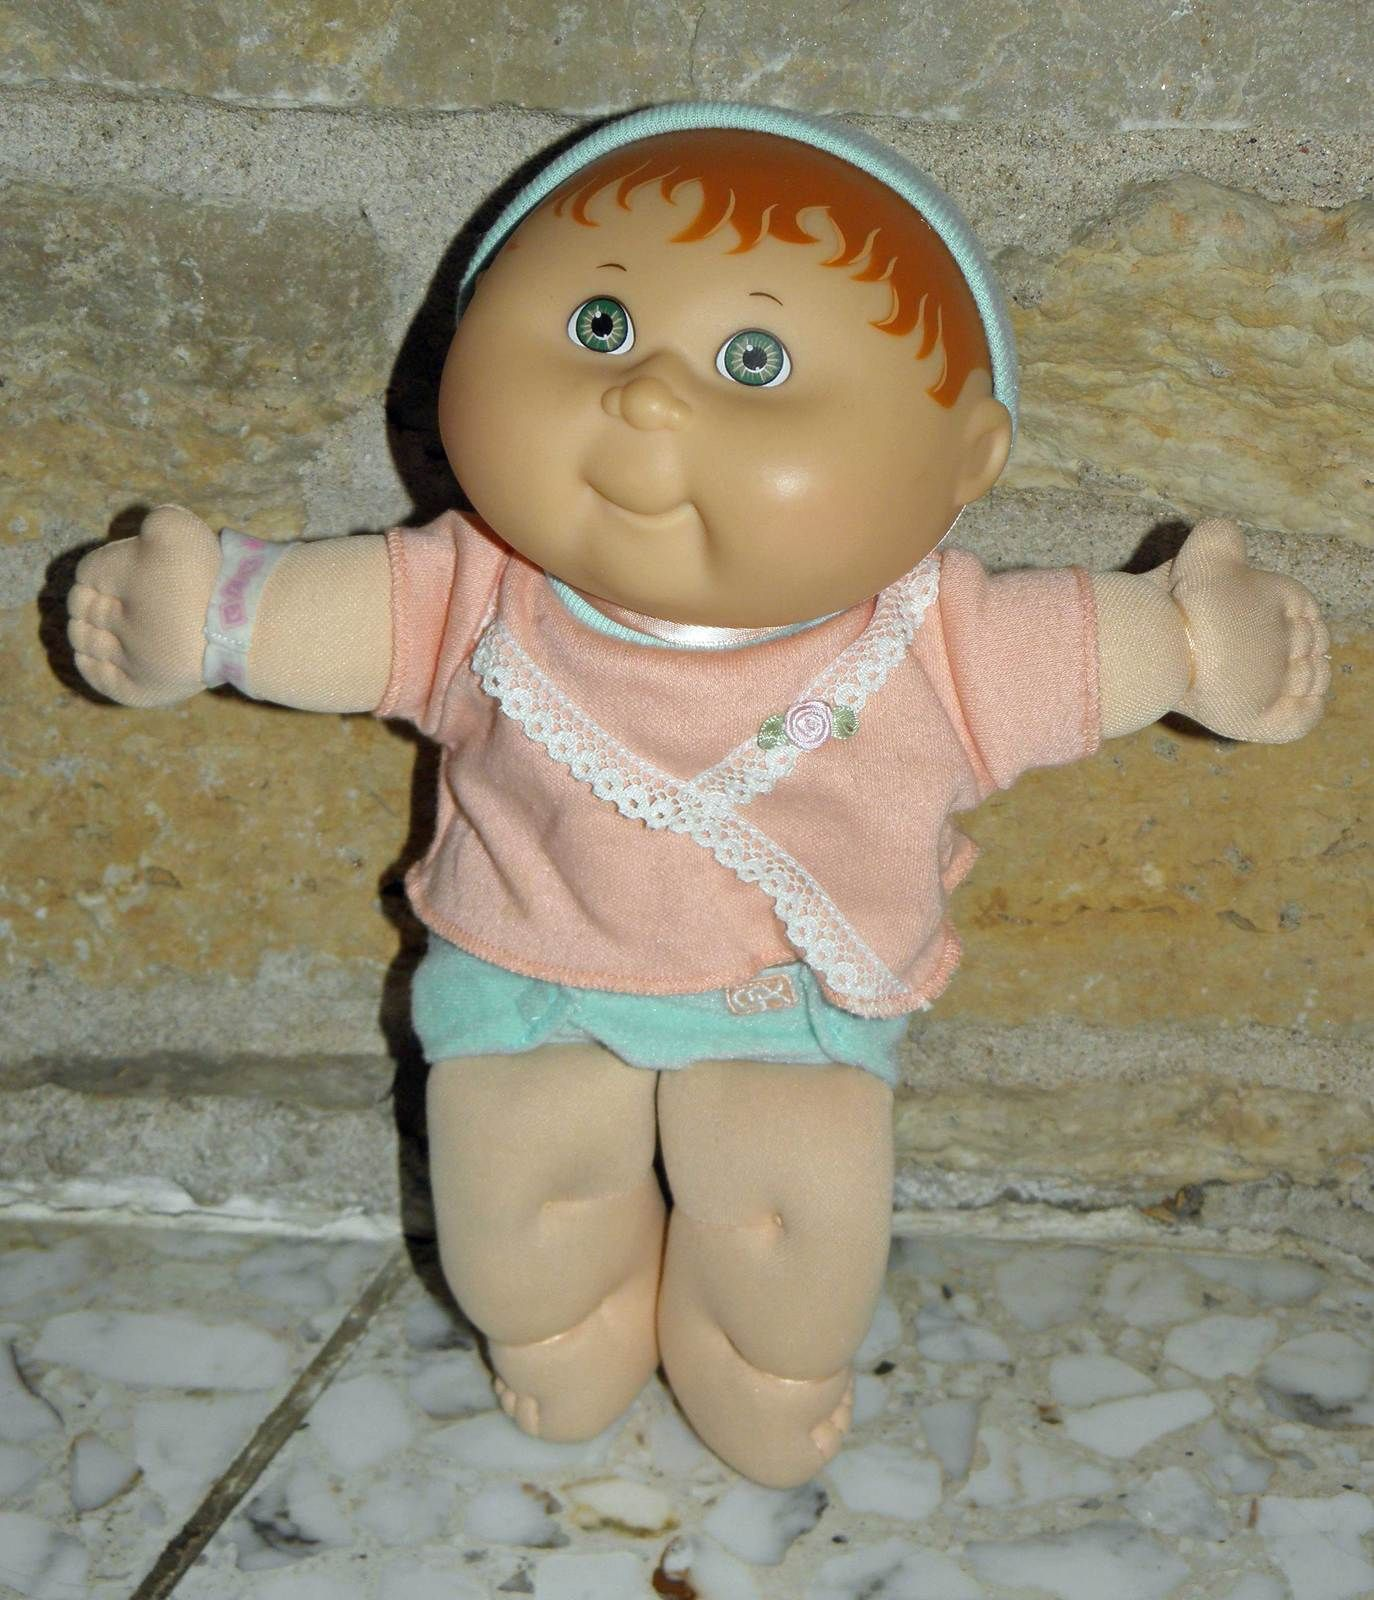 Hasboro Rare Hard To Find 10 Teeny Tiny Cpk With Painted Hair C 1992 Cabbage Patch Kids Hair Painting Patch Kids